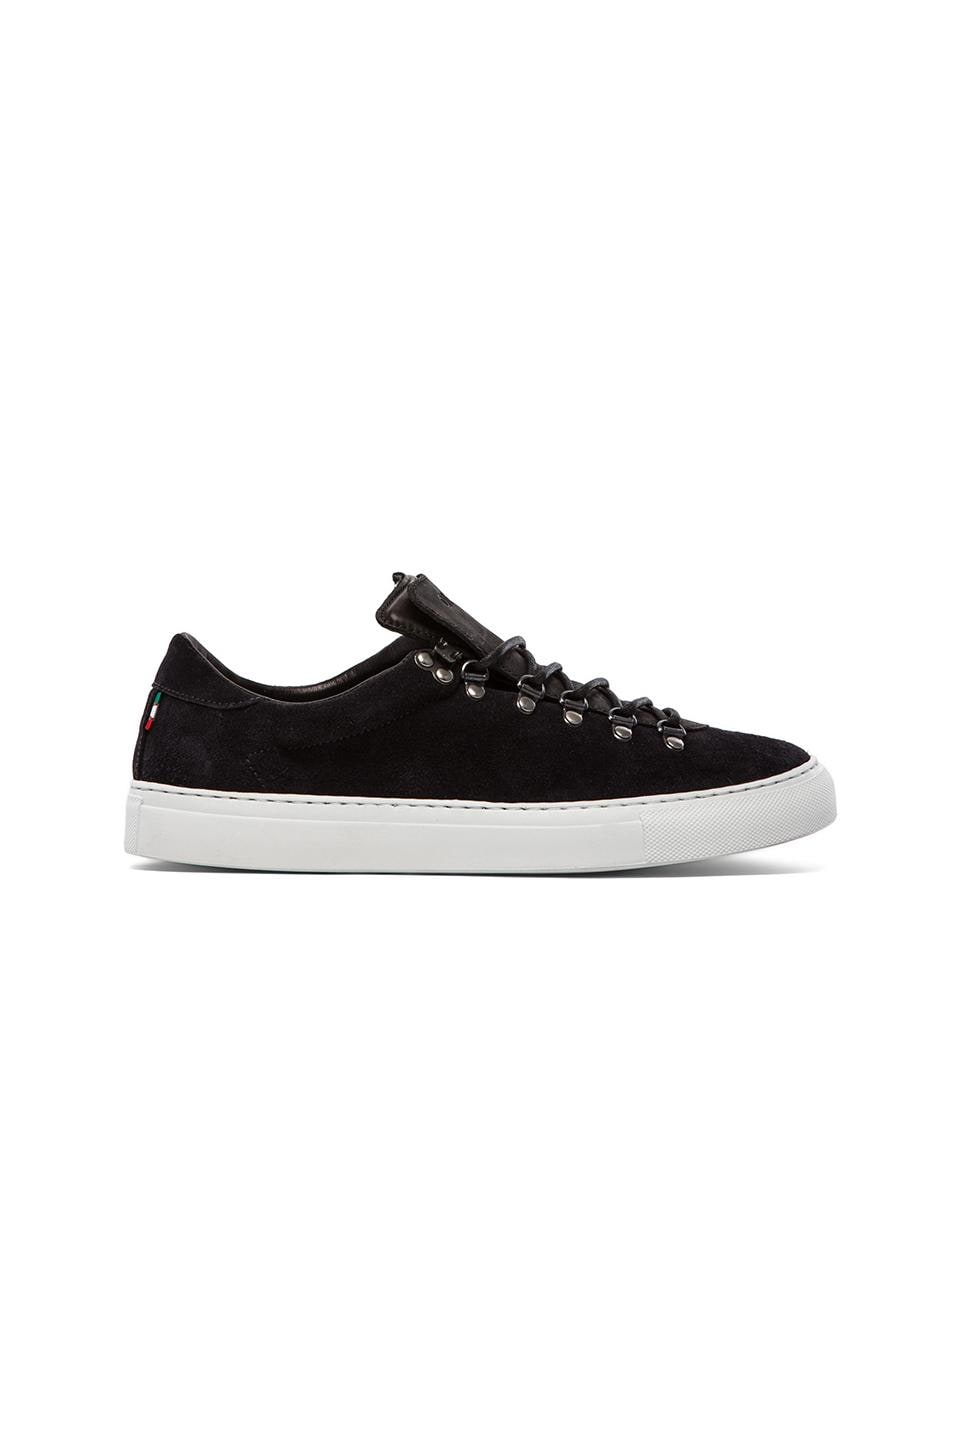 Diemme Marostica Low Velour Suede in Black